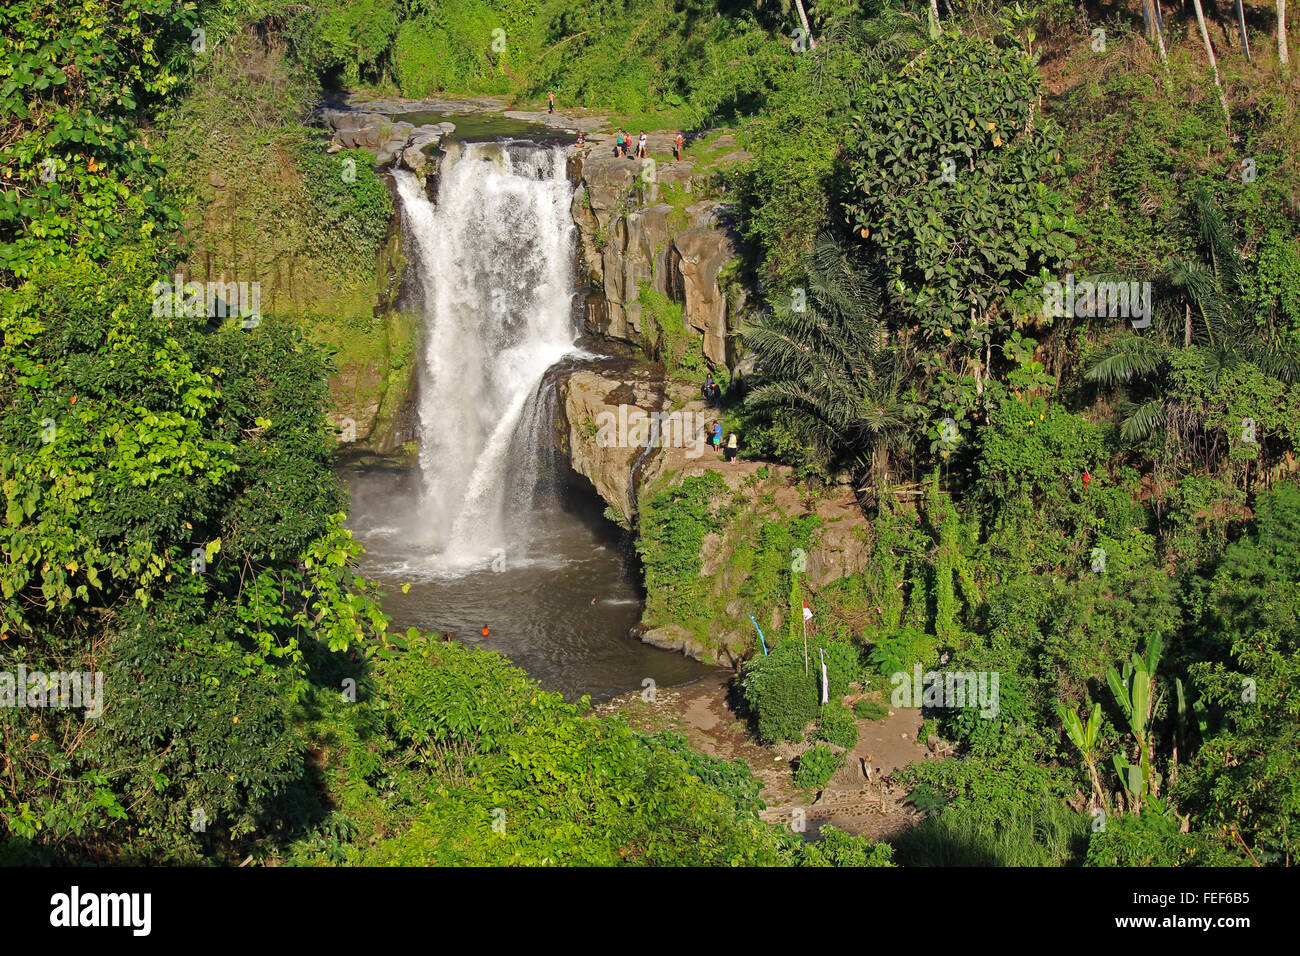 UBUD/INDONESIA - CIRCA NOVEMBER 2015: Amazing Tegallalang waterfall surrounded by green forest in Bali - Stock Image